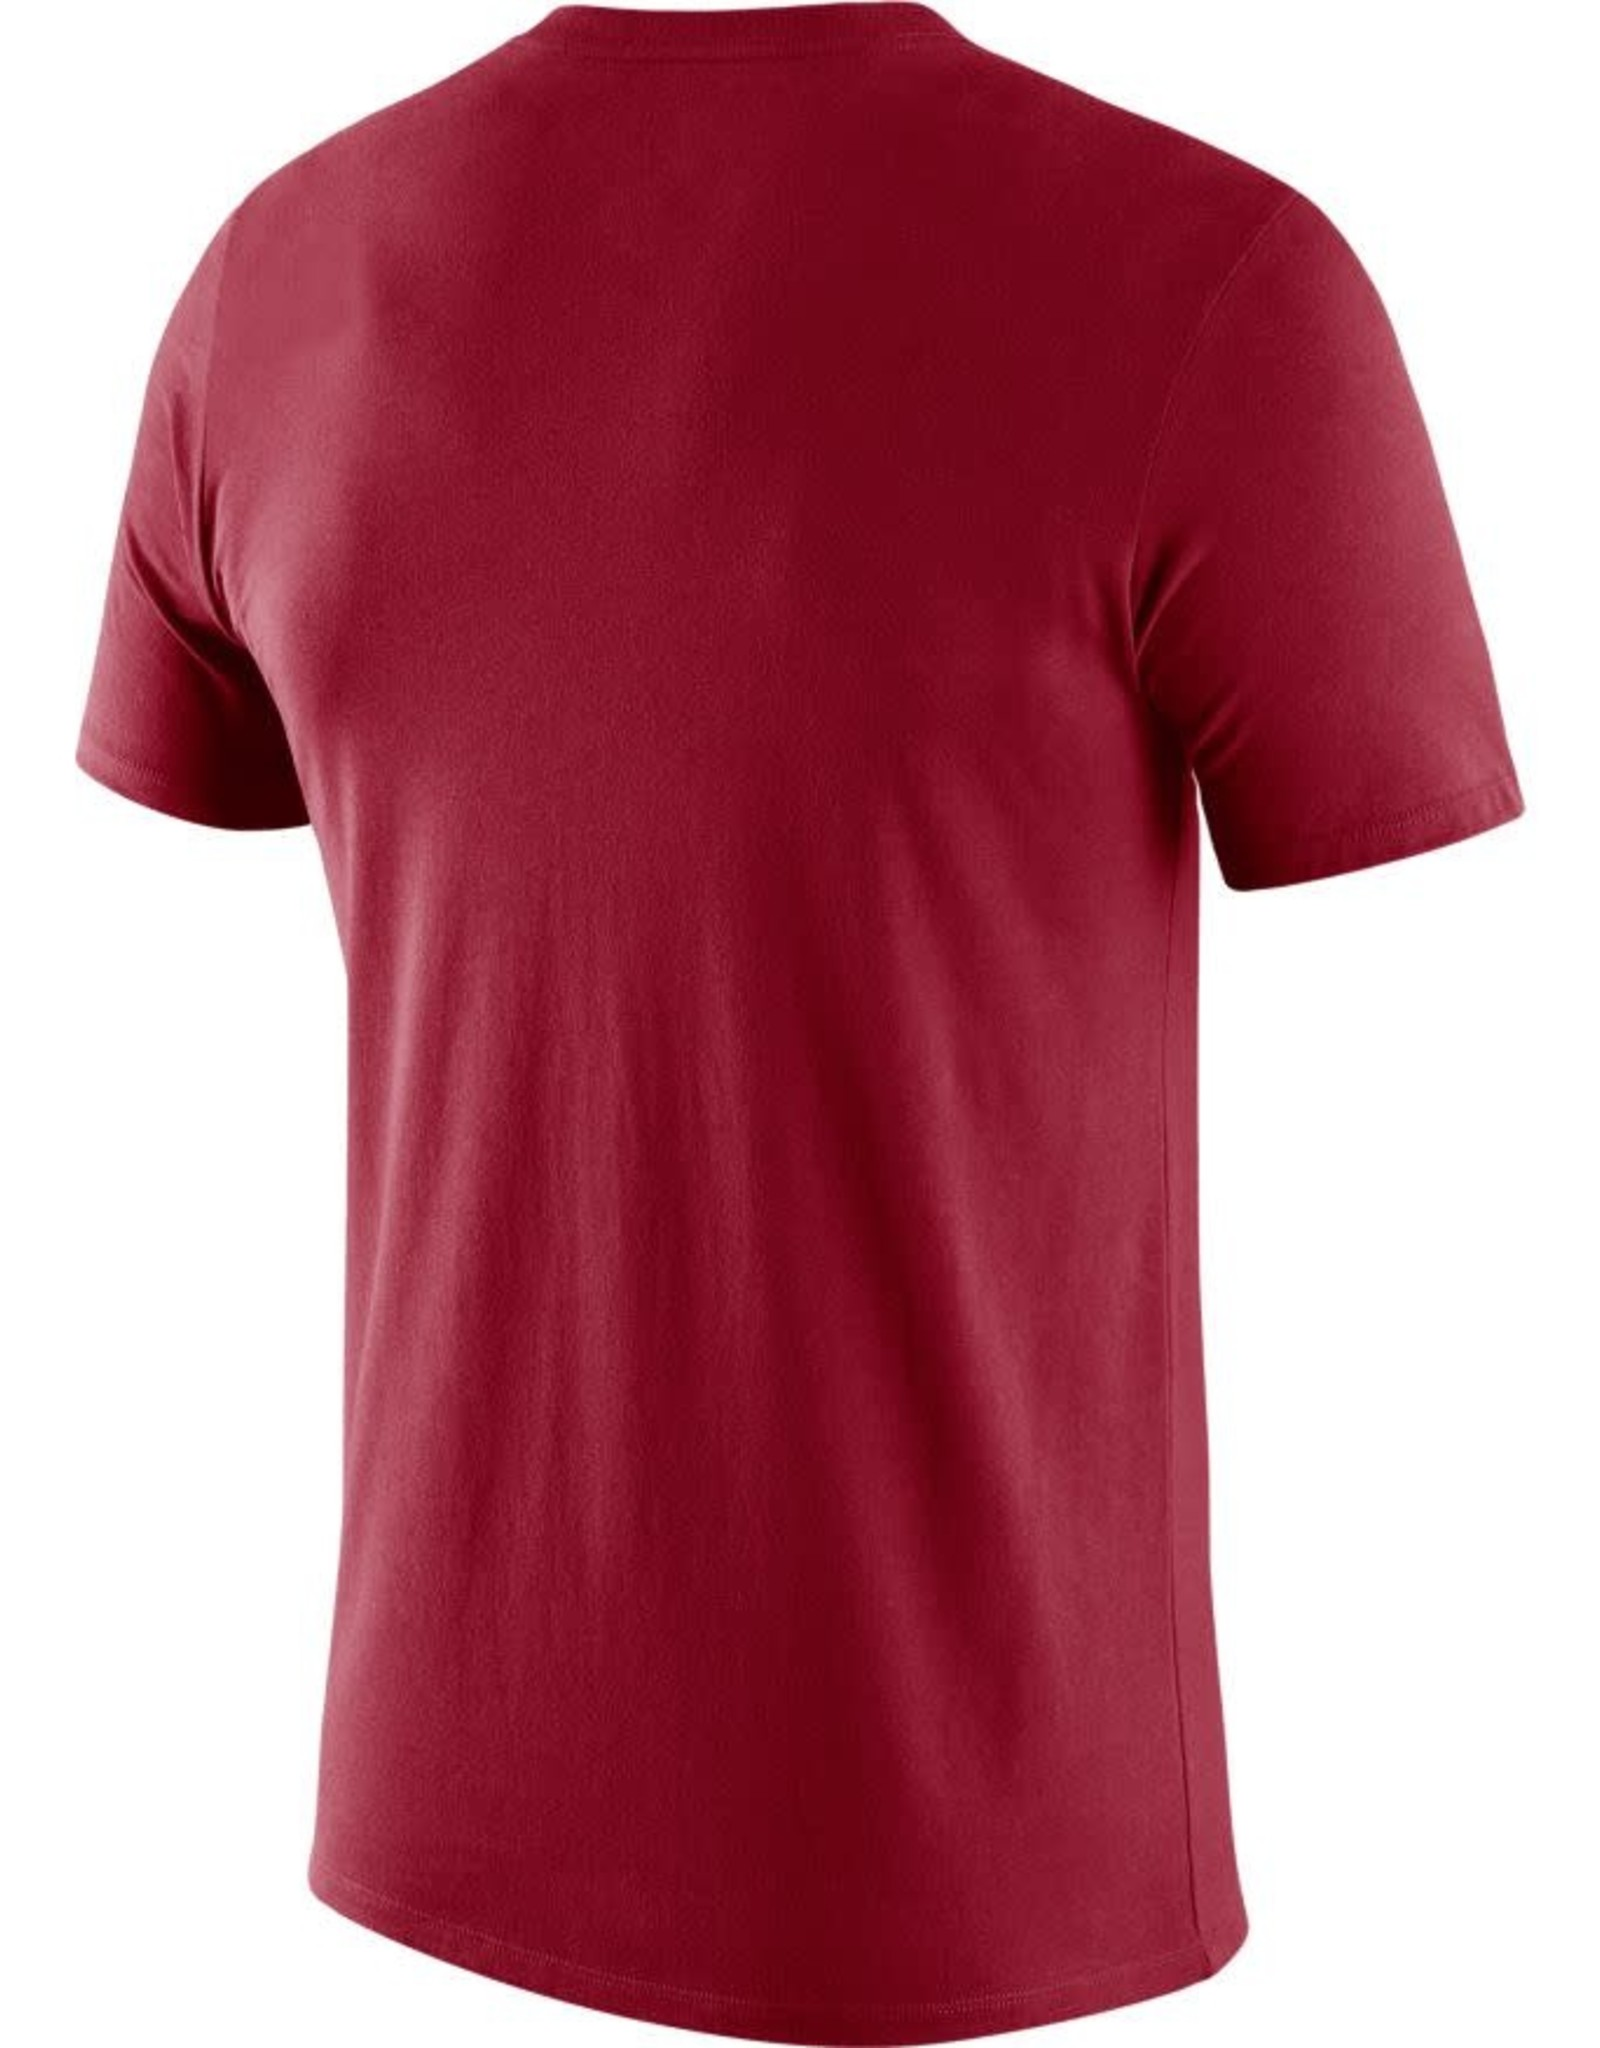 Nike Men's Nike Dri-Fit Cotton Boomer Sooner Phrase Tee Crimson